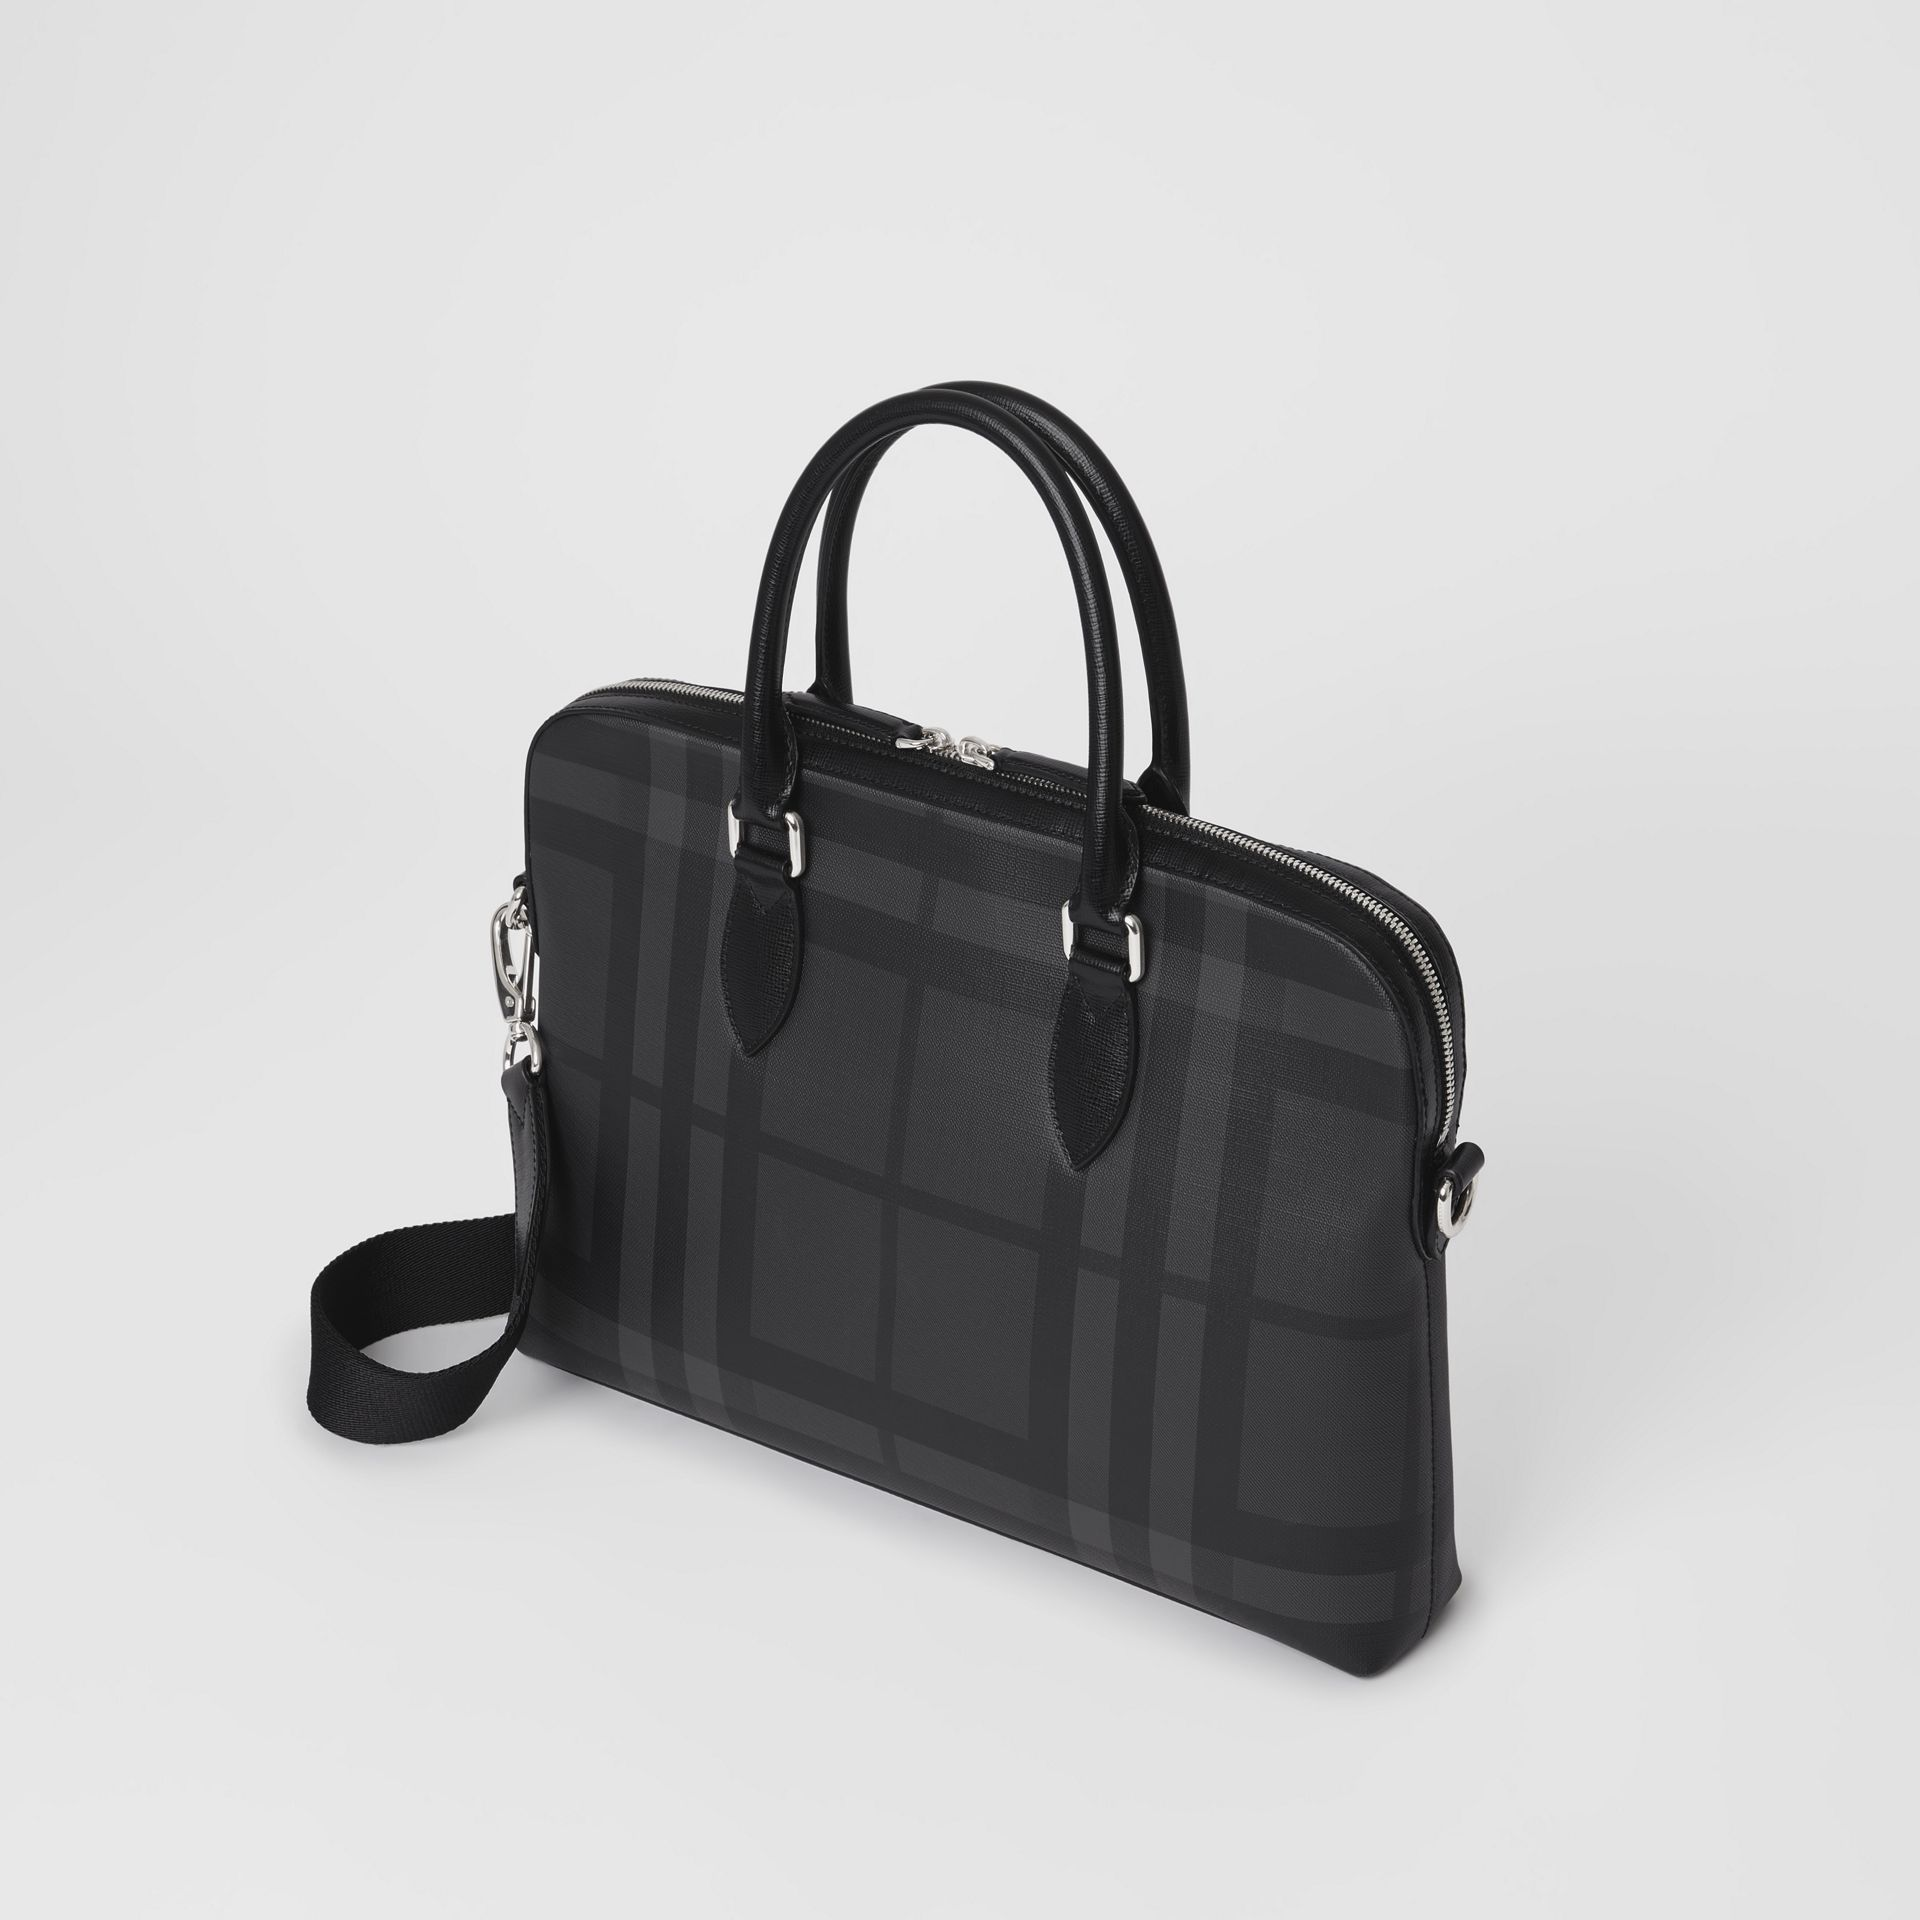 Attaché-case medium à motif London check avec éléments en cuir (Anthracite/noir) - Homme | Burberry Canada - photo de la galerie 4